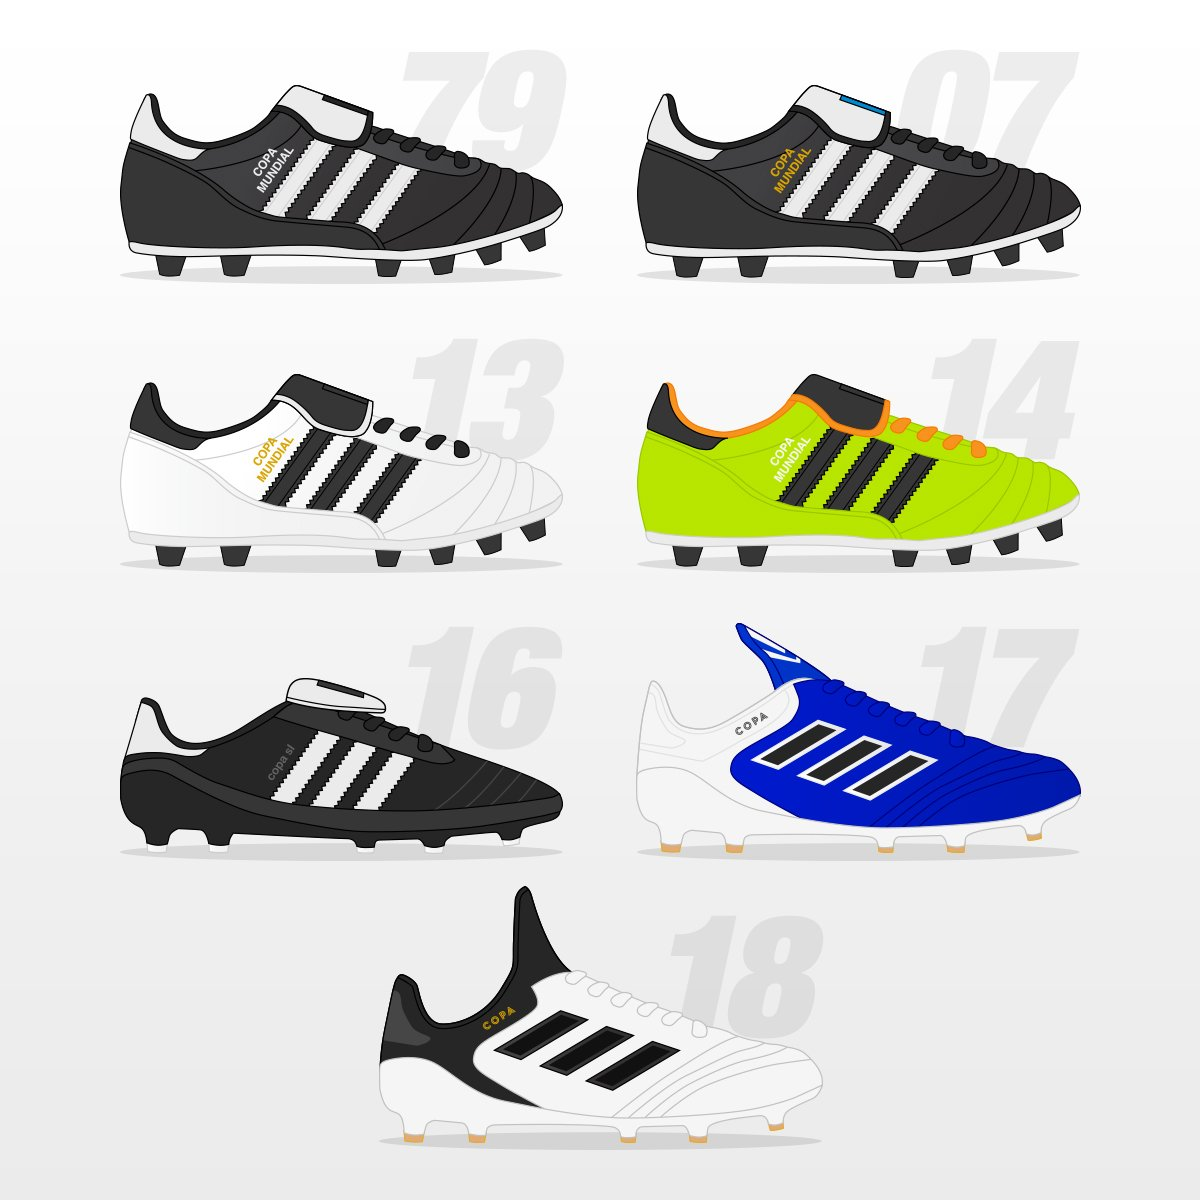 020d5af7a93 We take a look at the full history of the Adidas Copa